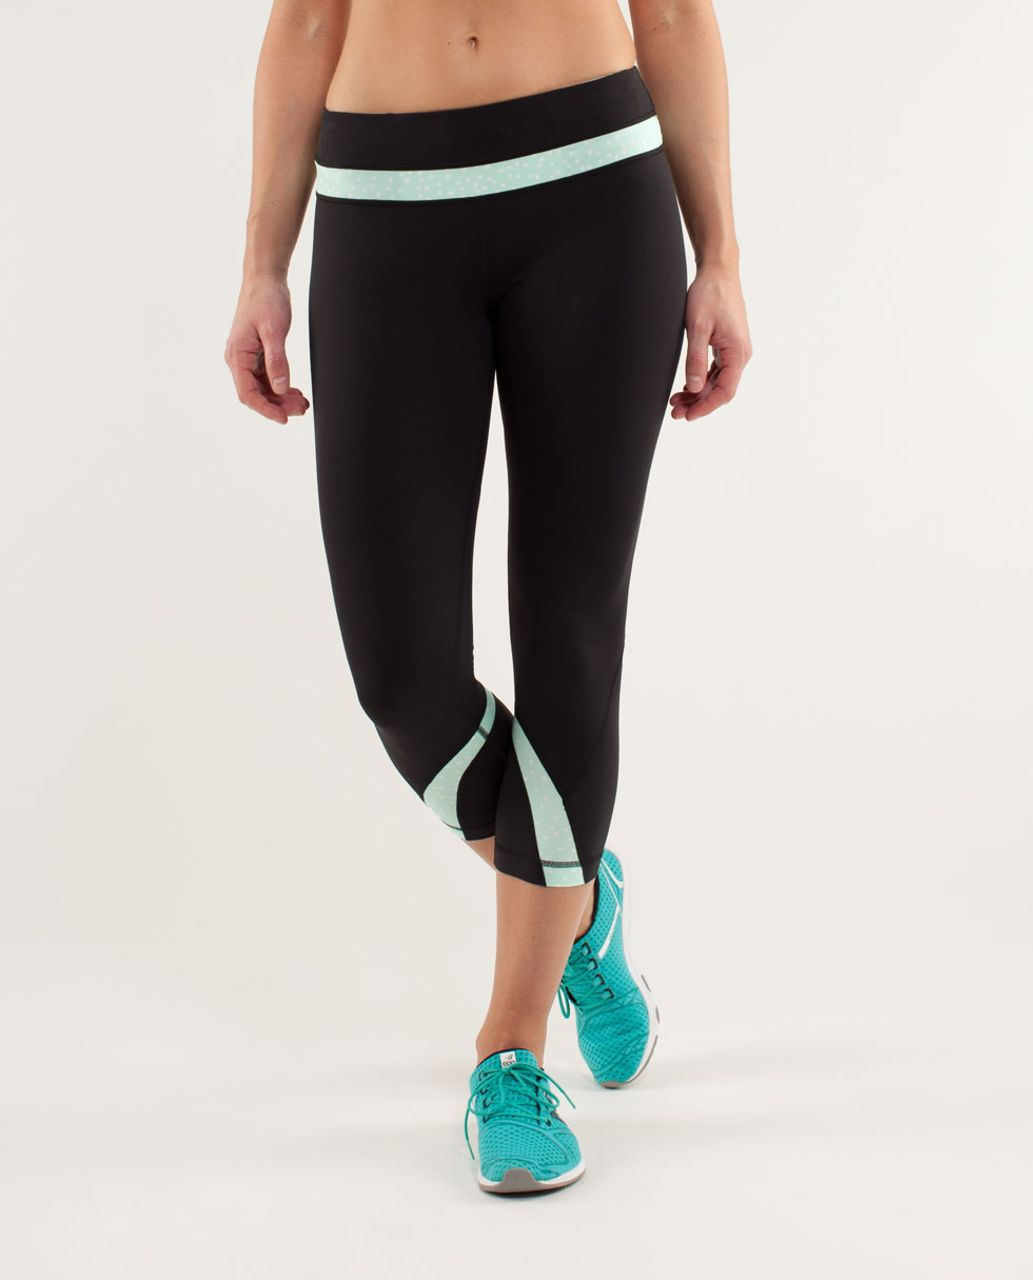 Lululemon Run:  Inspire Crop II - Black / Petit Dot Fresh Teal